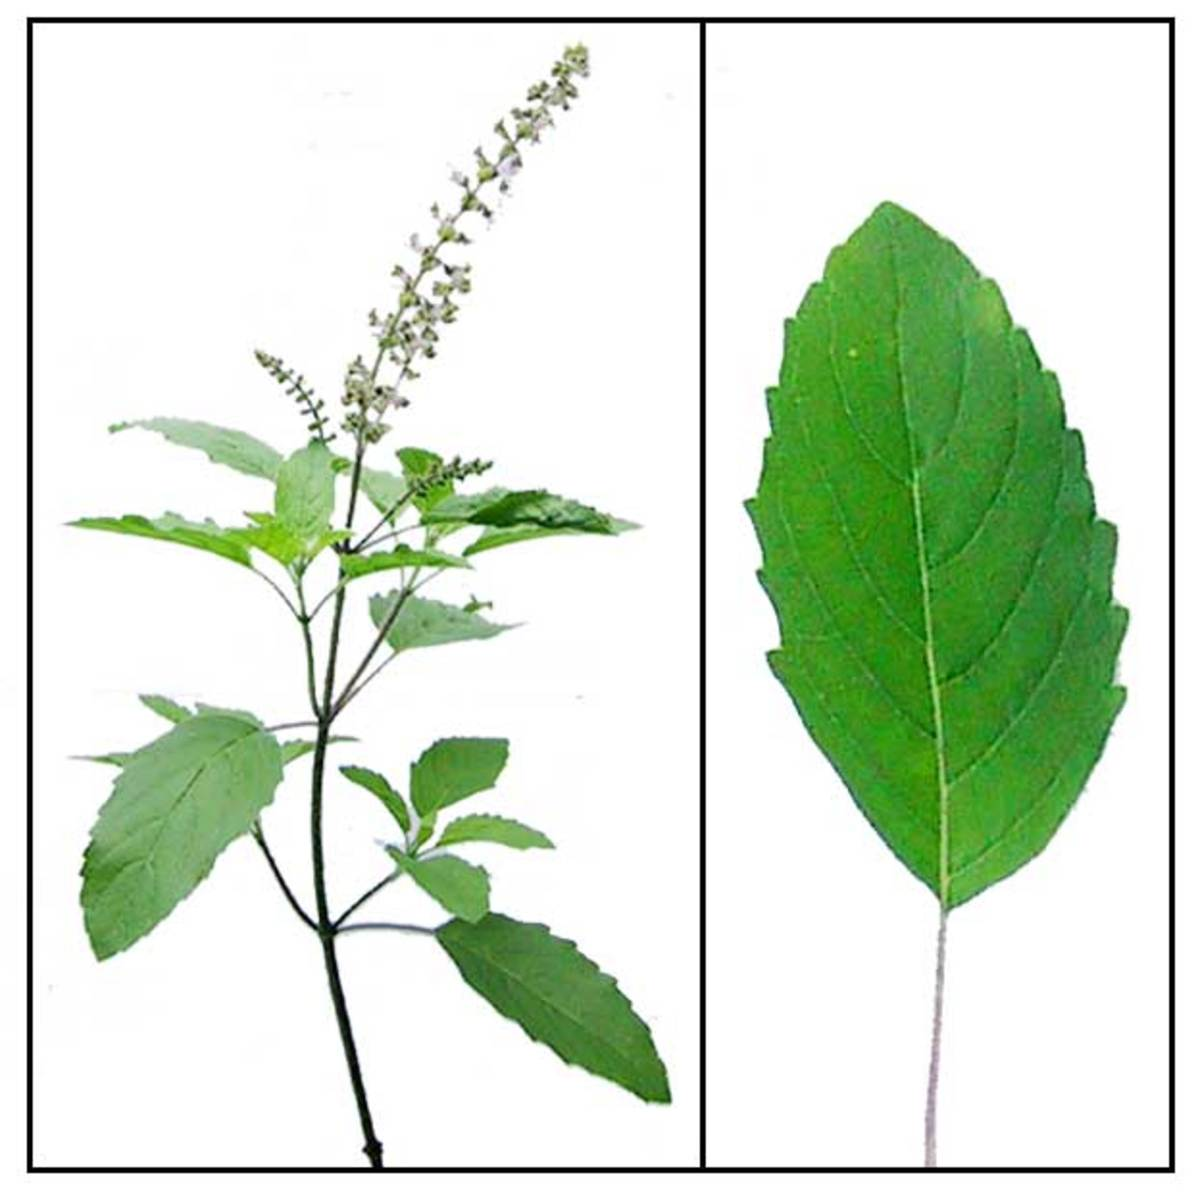 11 Health Benefits of Holy Basil (Tulsi)